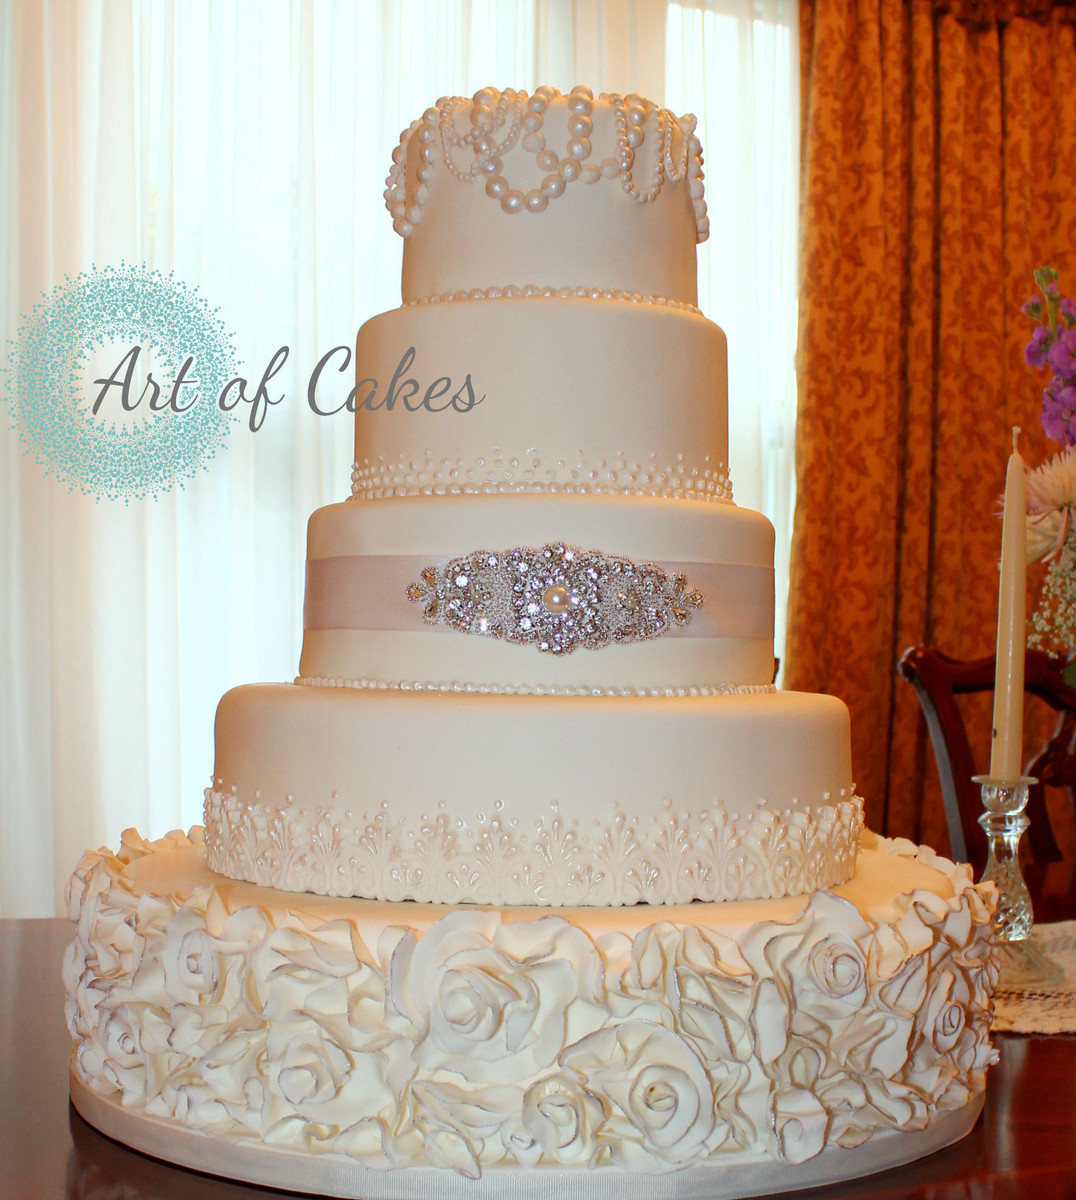 Wedding Cakes Knoxville Tn  Art of Cakes s Wedding Cake Tennessee